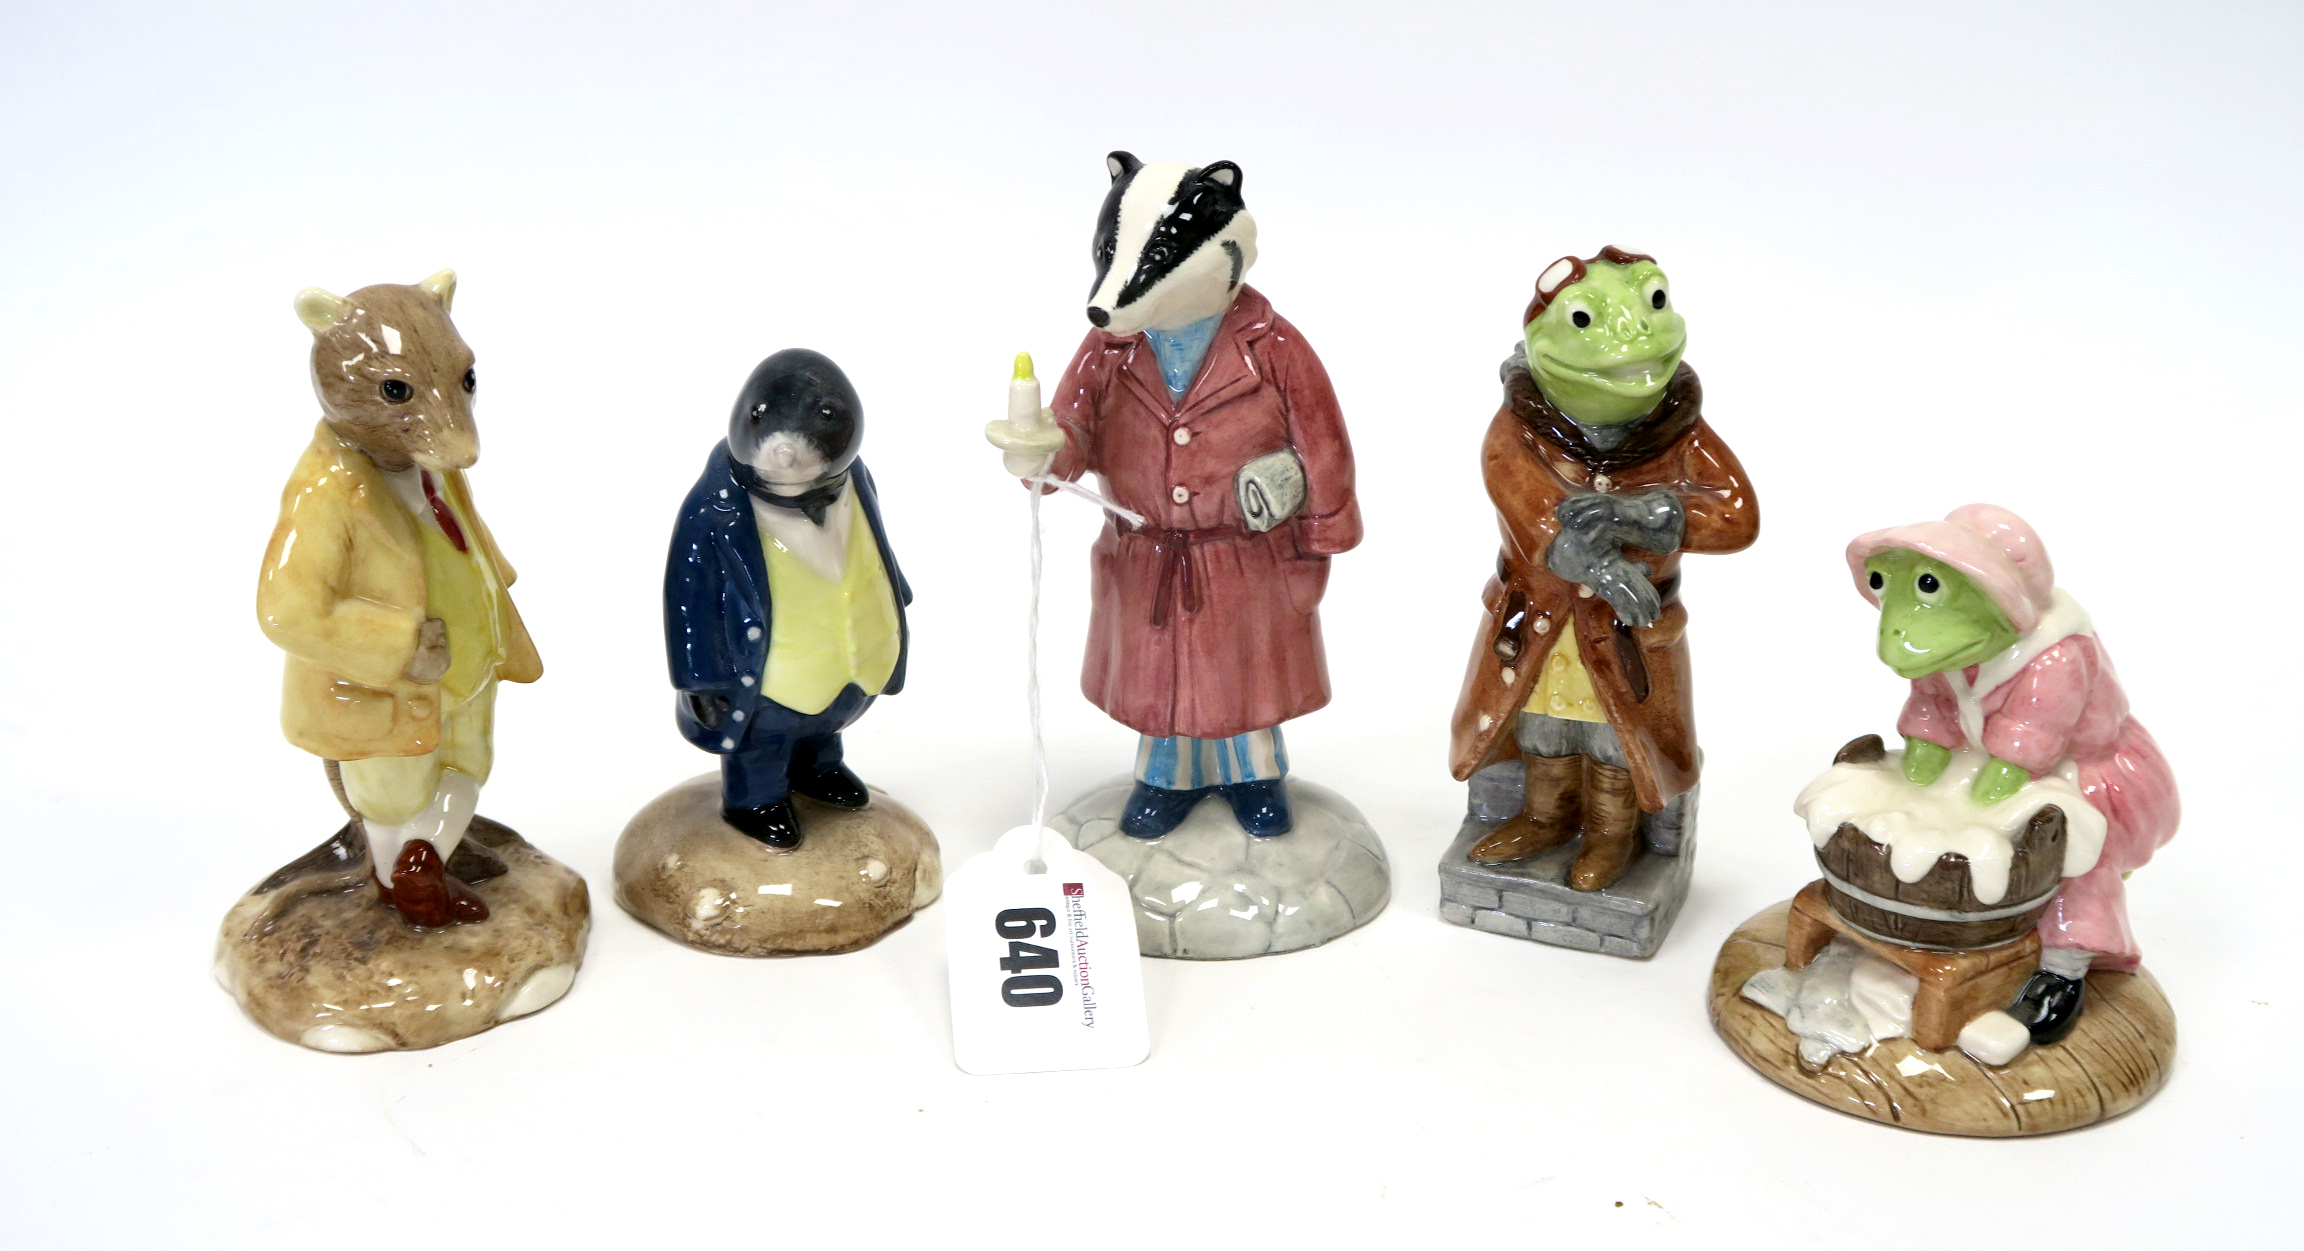 Lot 640 - Five Beswick Pottery Limited Edition Wind in the Willows Figures, Washerwoman Toad, Ratty, Toad,